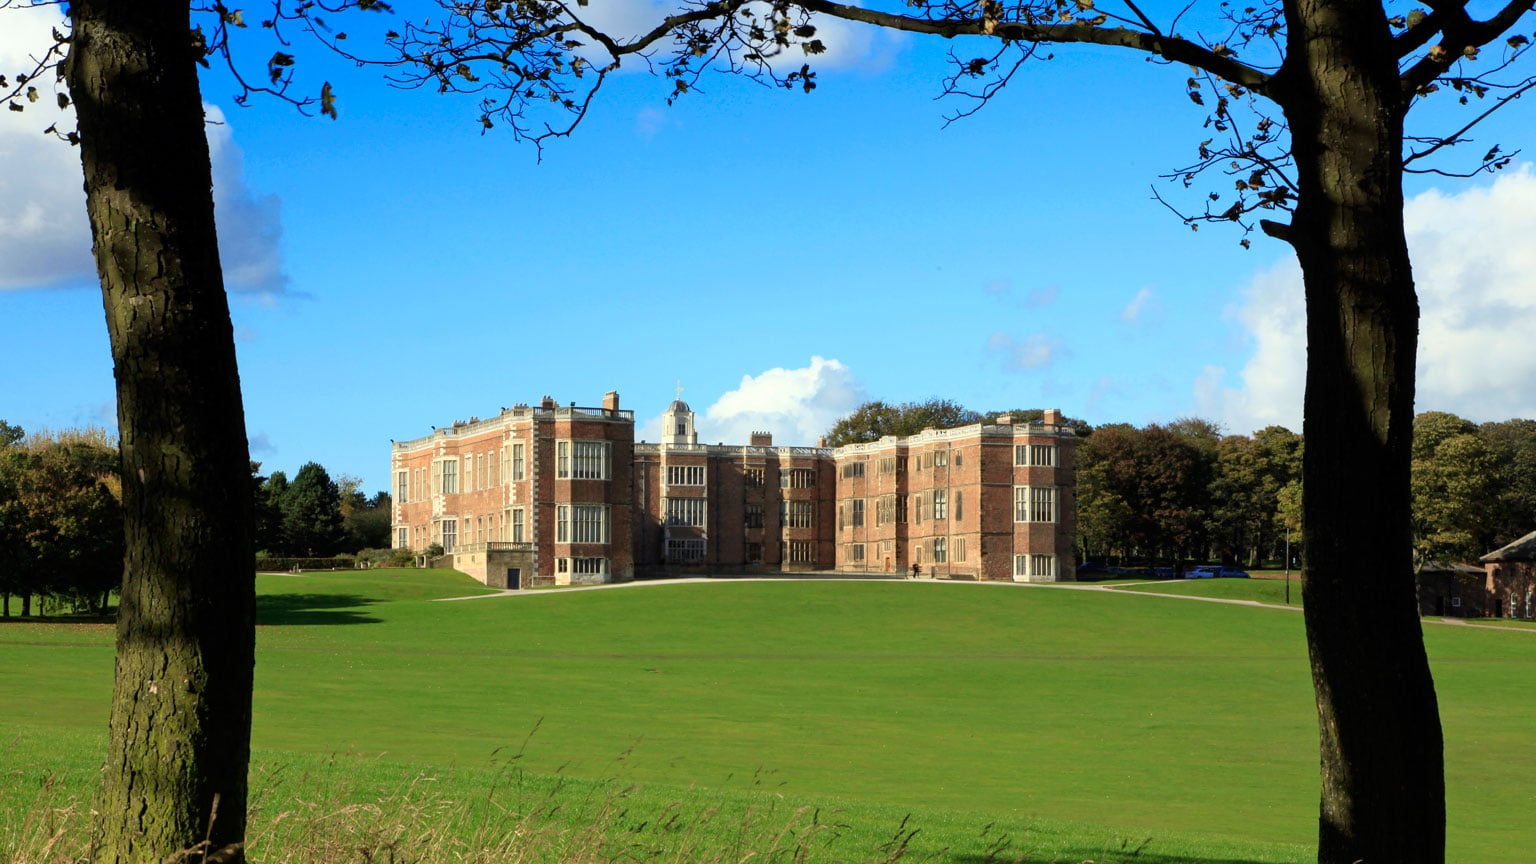 Temple Newsam House. Free entry with National Art Pass -